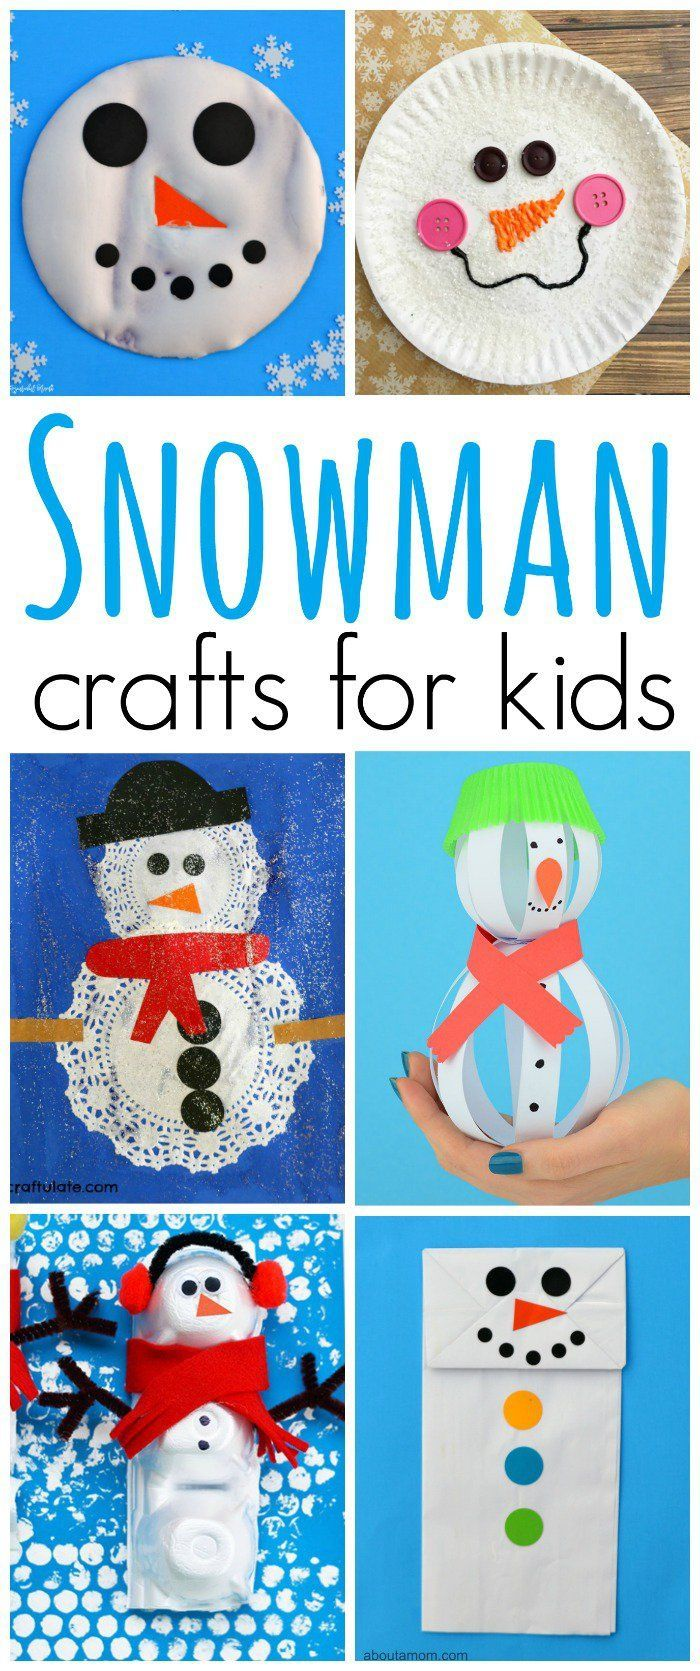 Kids will stay warm while making these super cute and fun snowman crafts this winter.